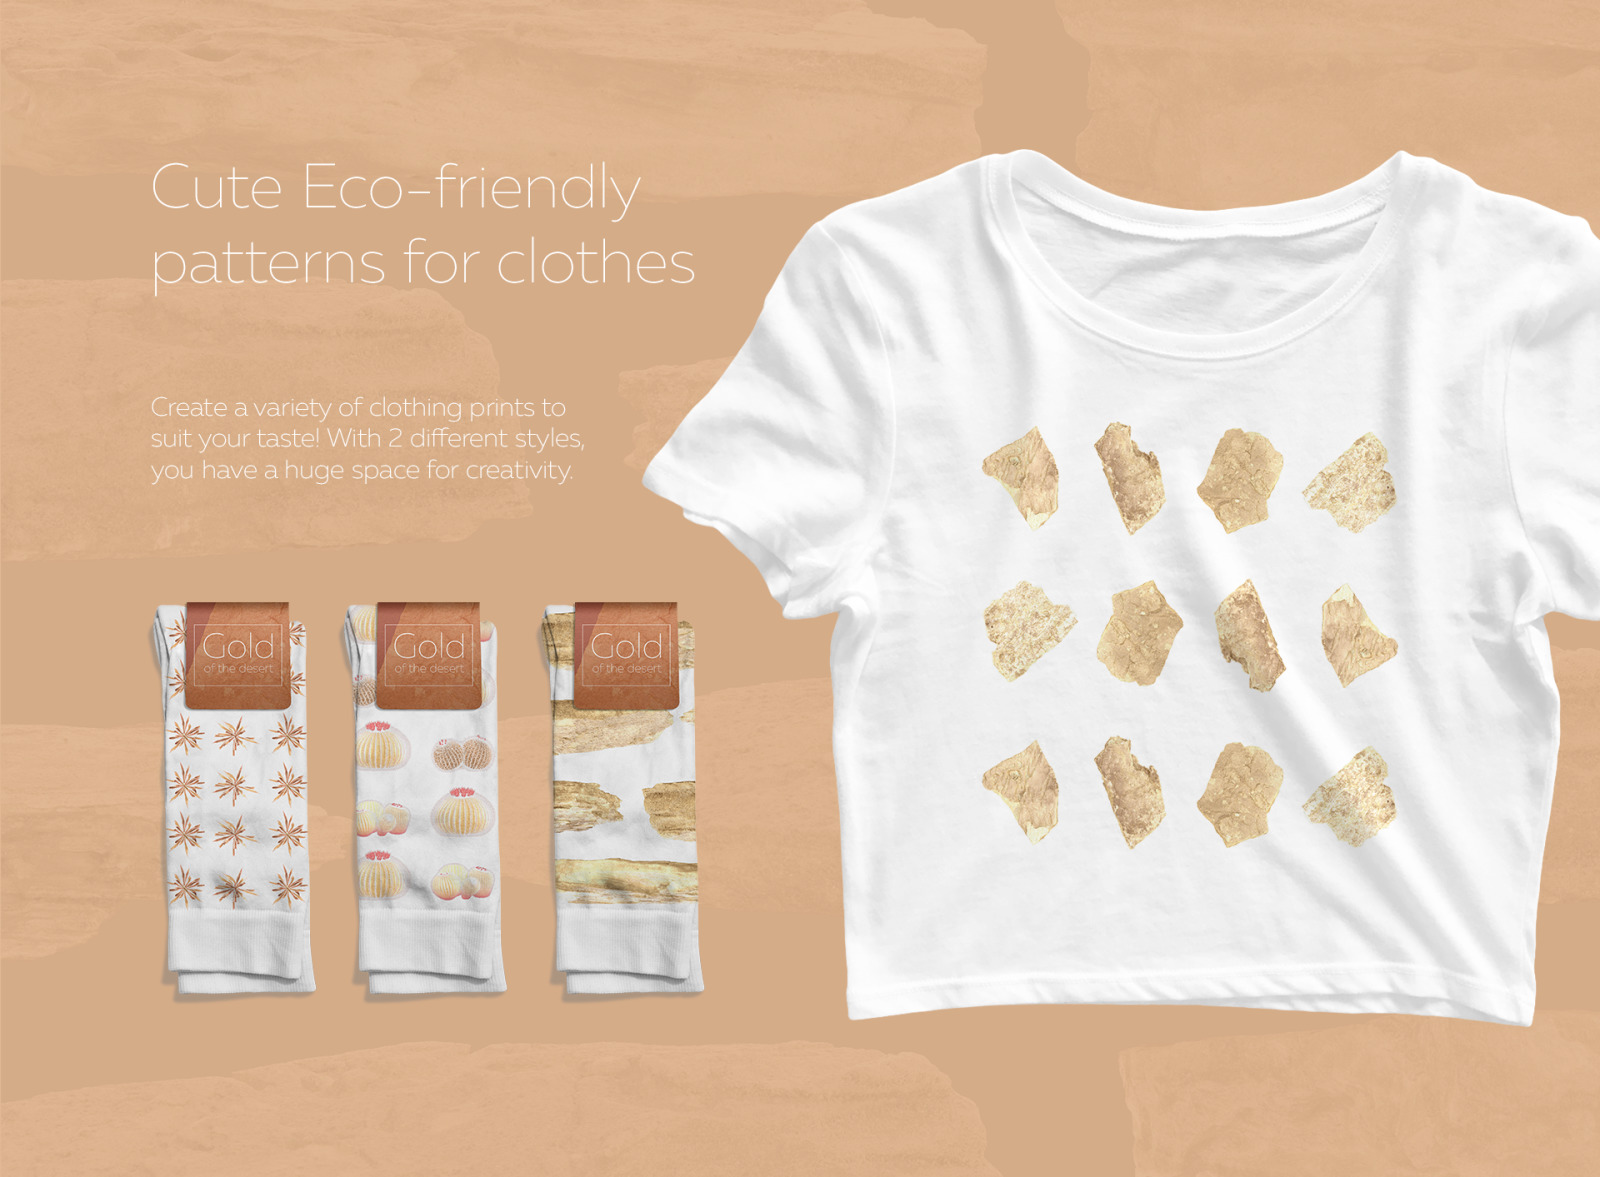 Gold of the desert #02, 310 cactus and rock mockups + 50 patterns